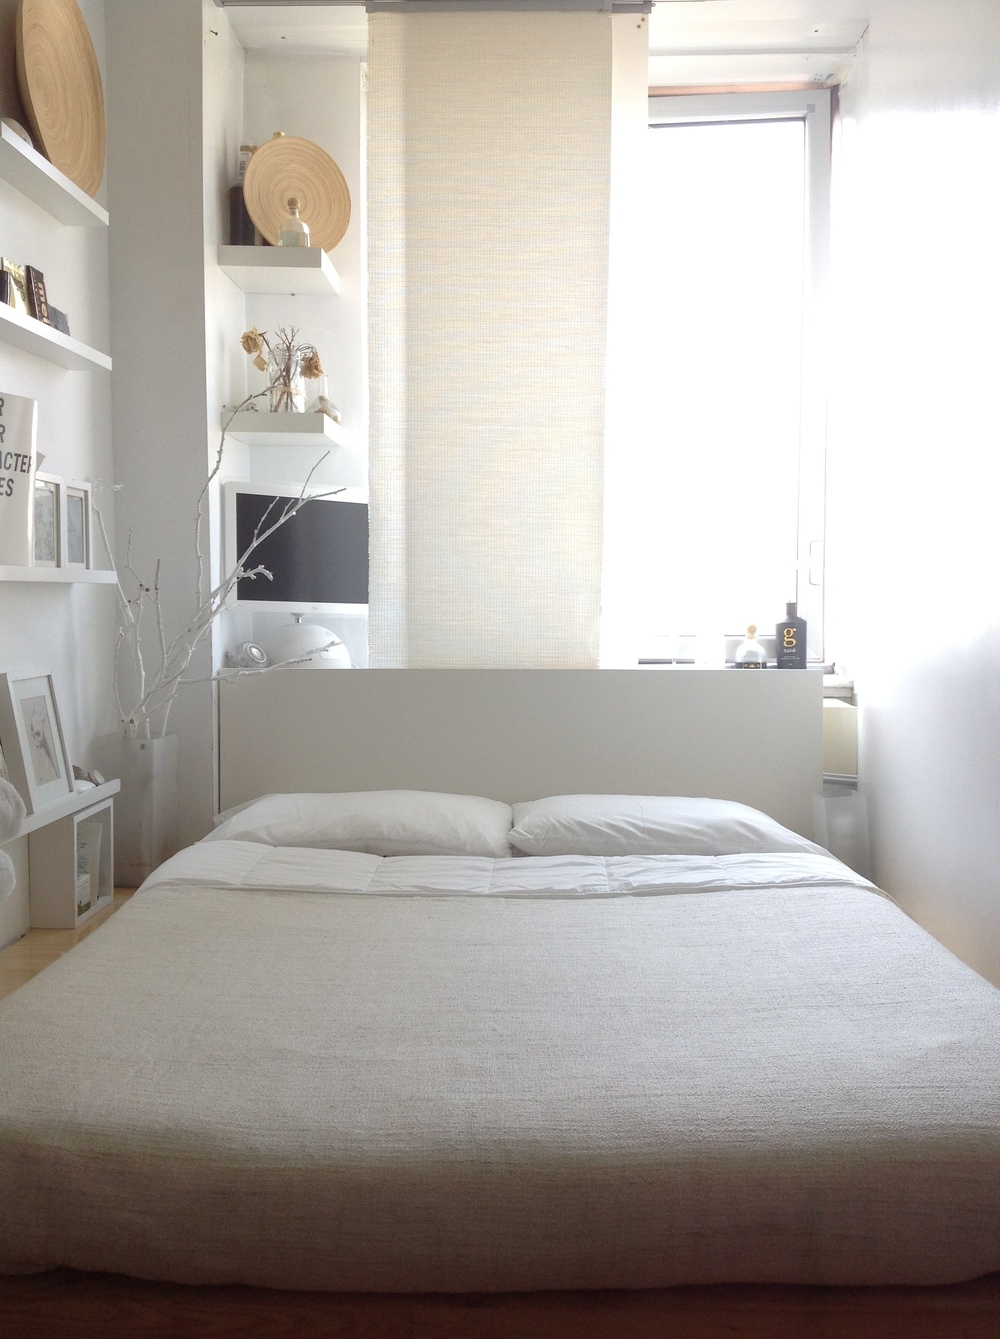 Steve I-Lin Chung - Muji Inspired Room - Apartment Therapy Big Reveal Contest